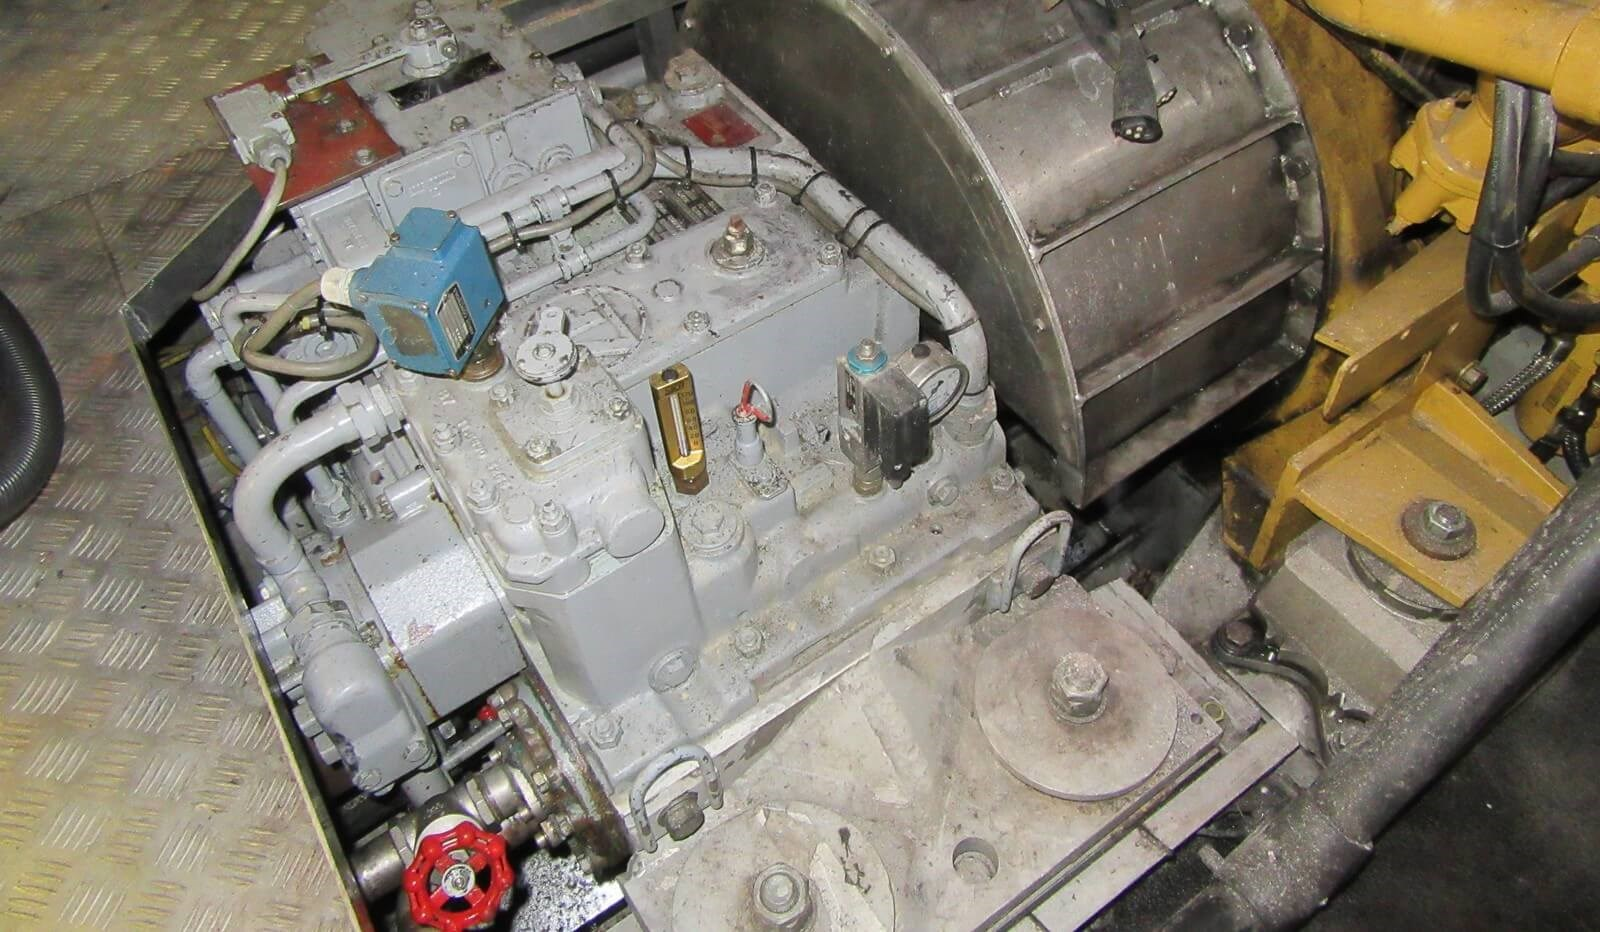 Used Pilot/Crew Tender ZF gearbox